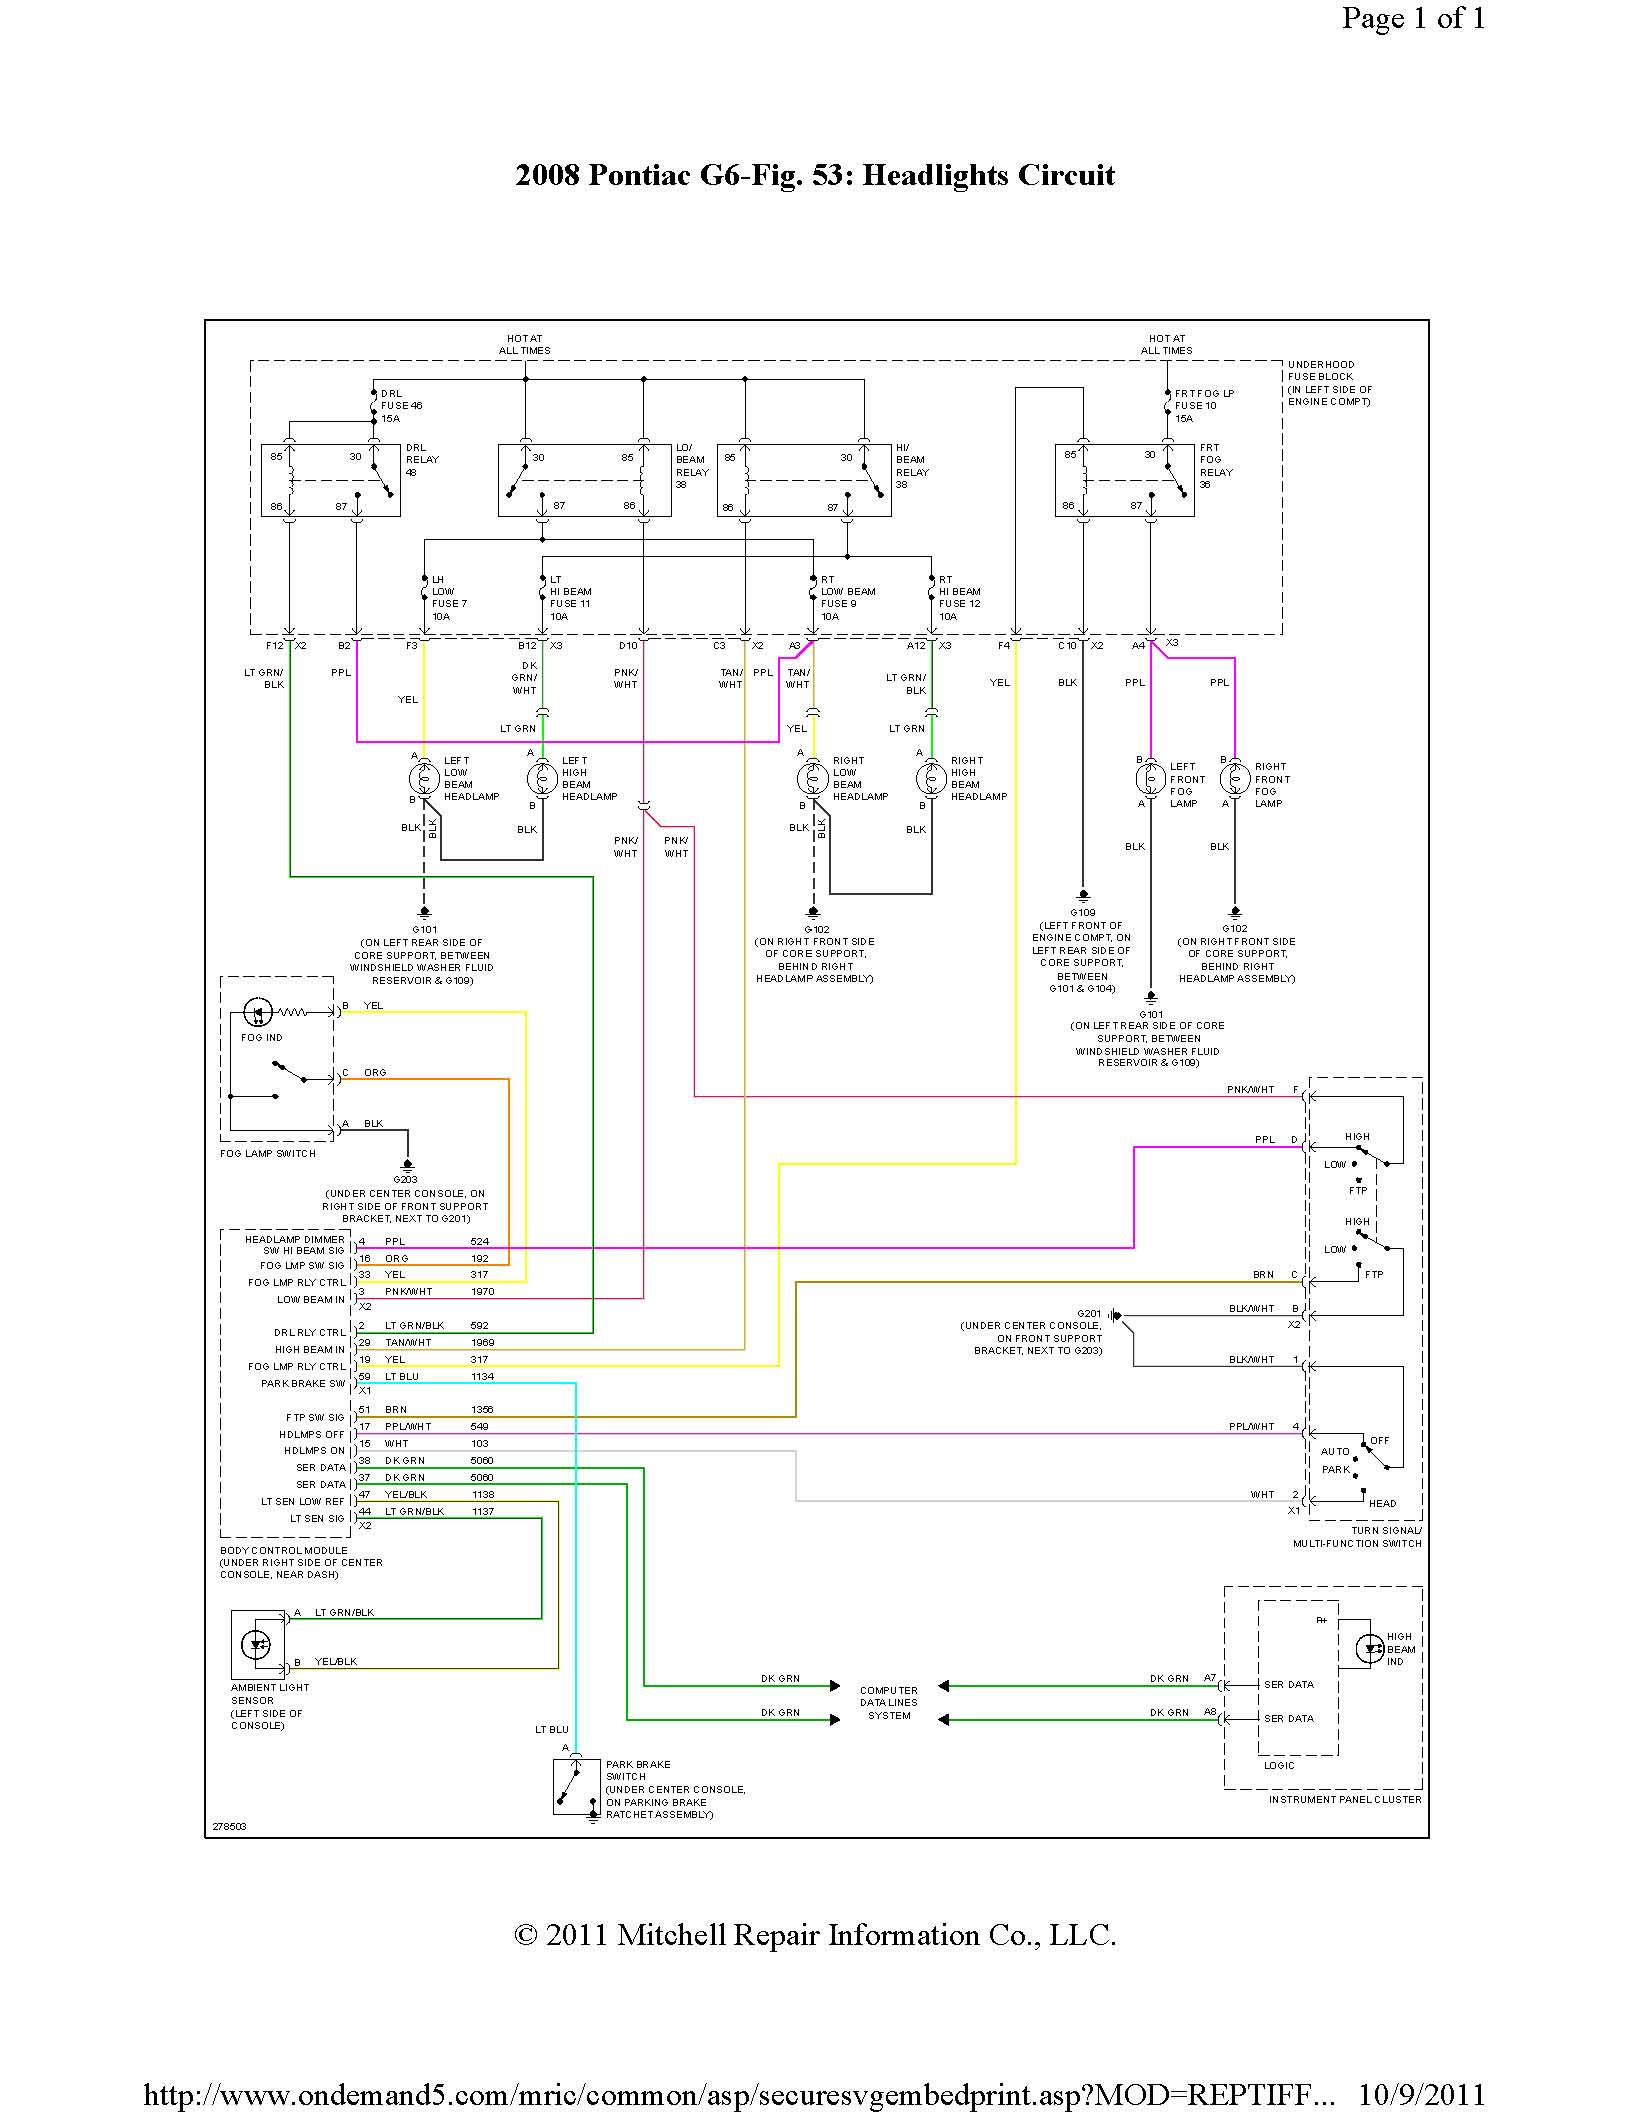 hight resolution of g6 headlight wiring harness data diagram schematic 2008 pontiac g6 headlight wiring diagram 2008 pontiac g6